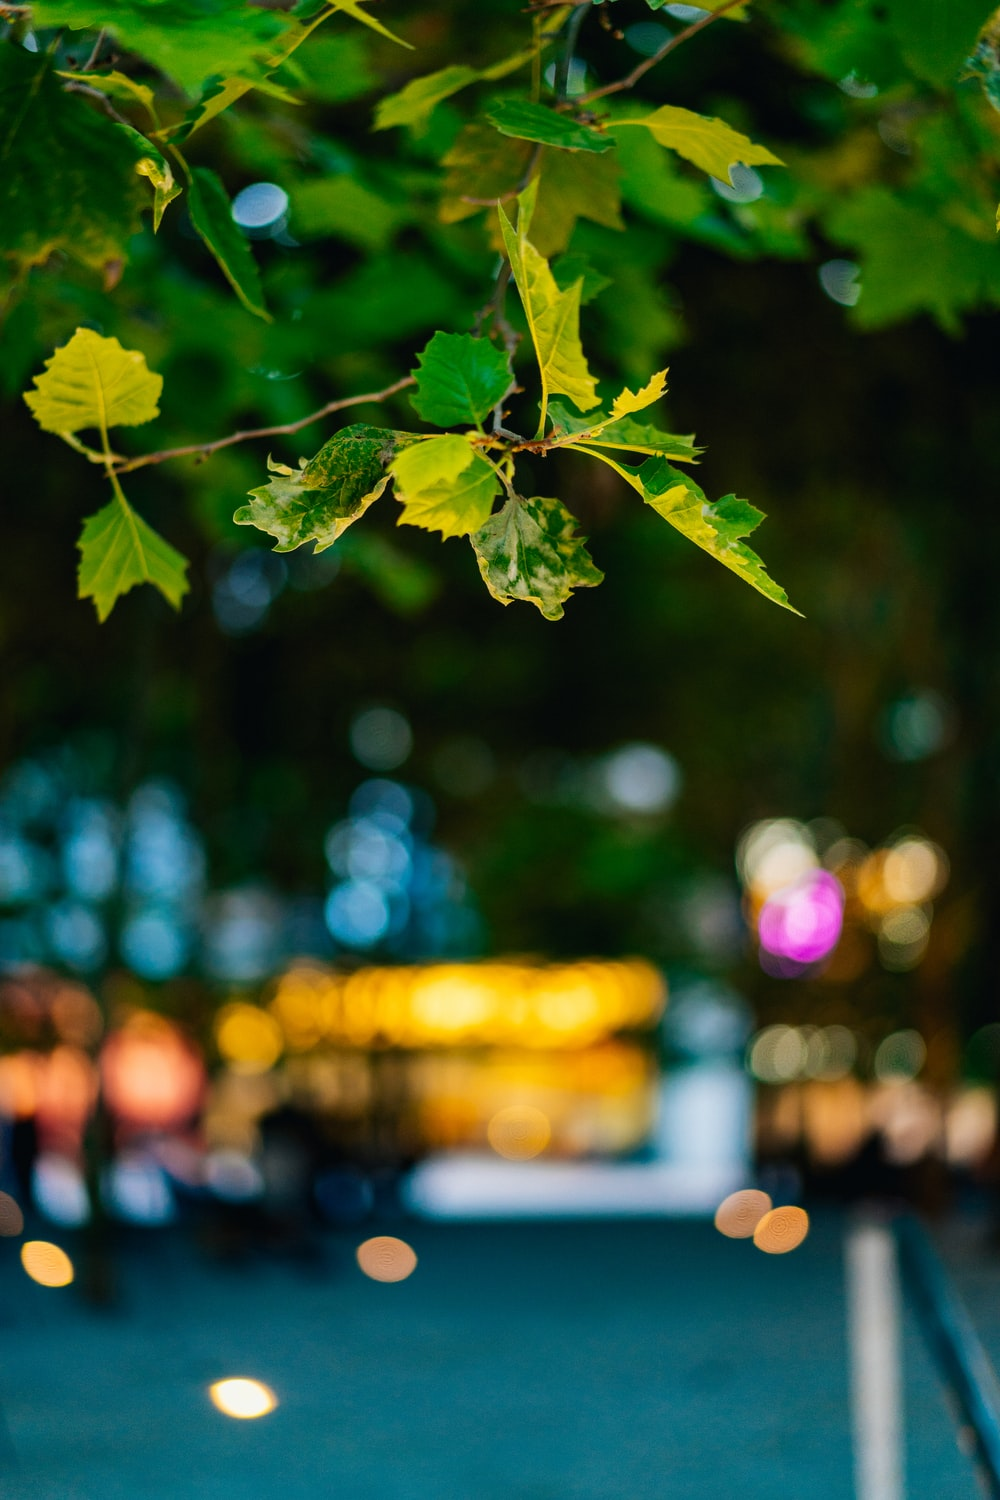 bokey photography of green leaves